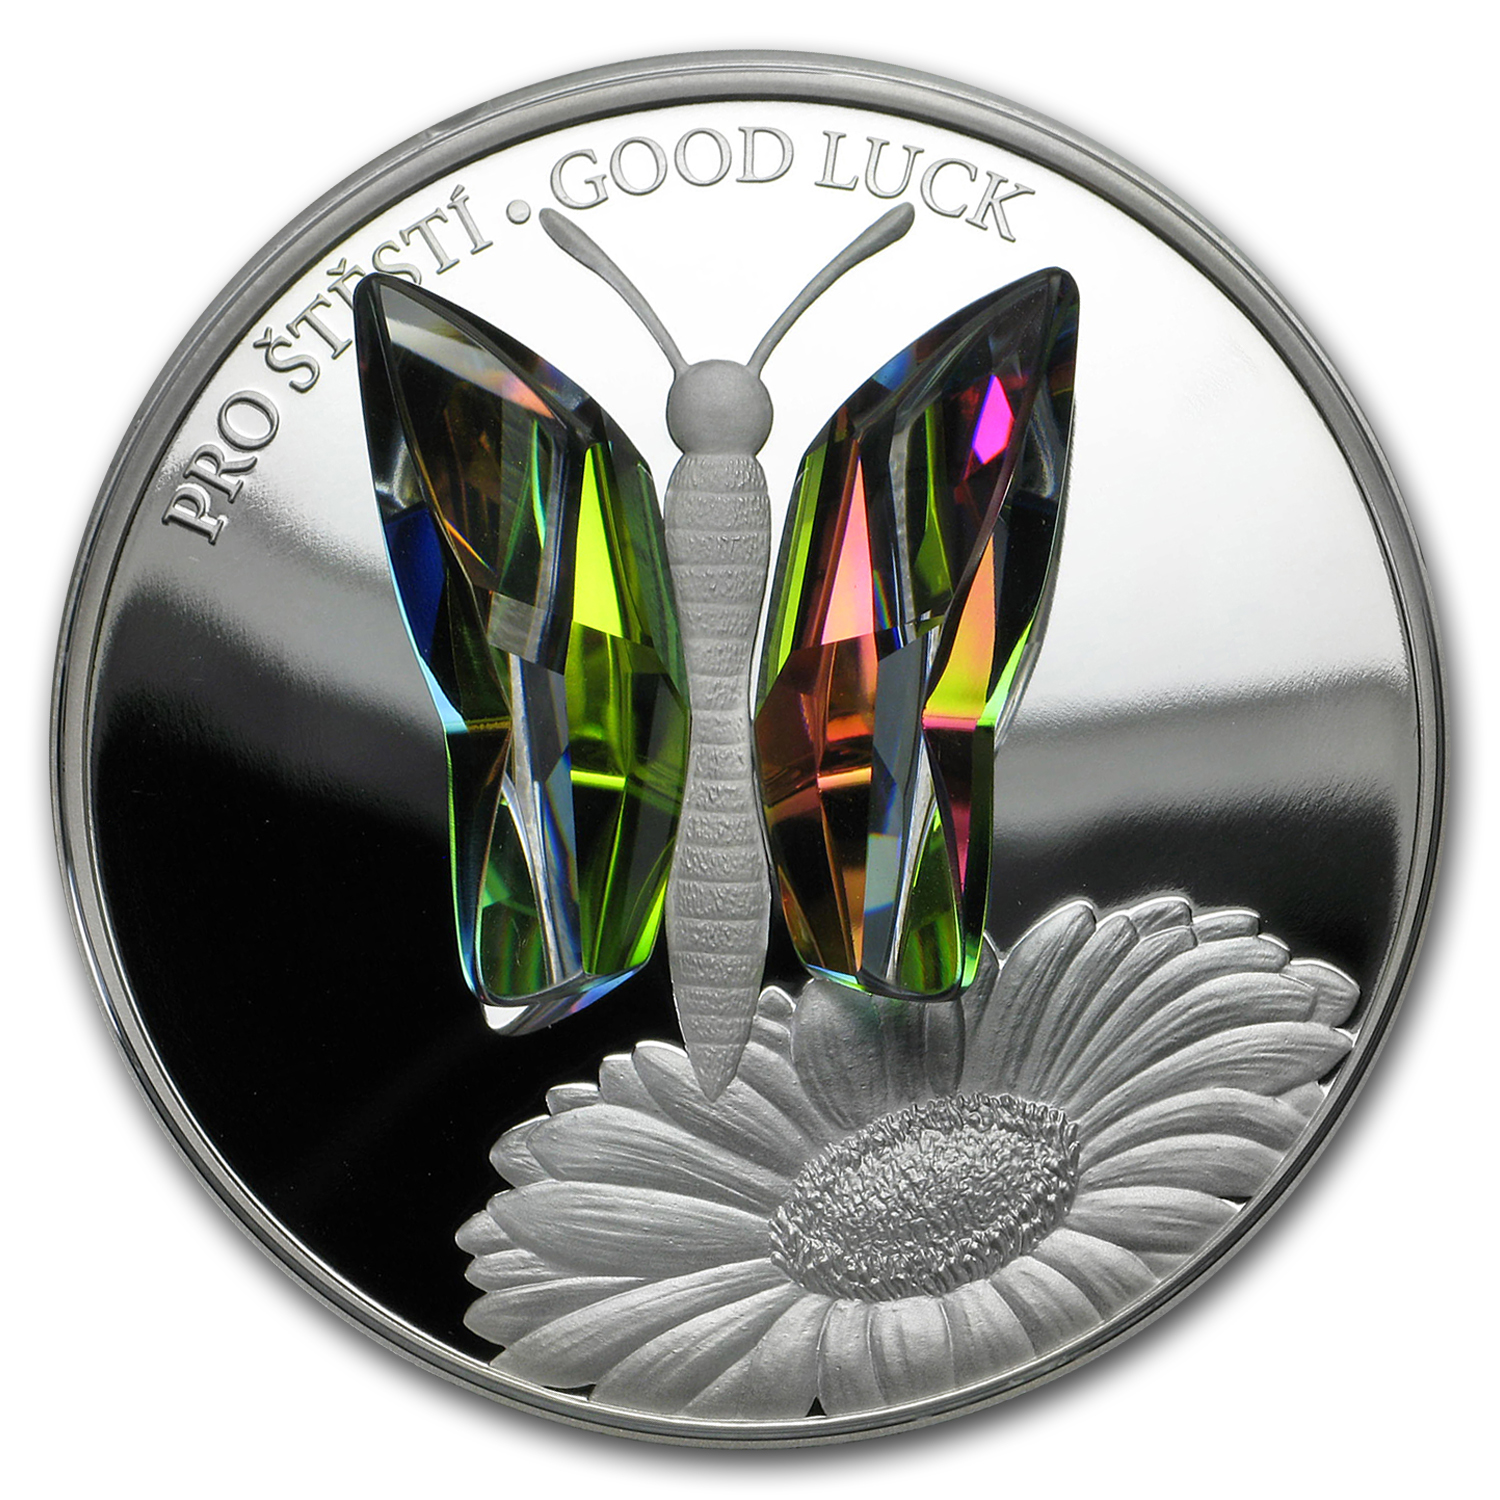 2016 Niue Silver Crystal Coin First Series Good Luck